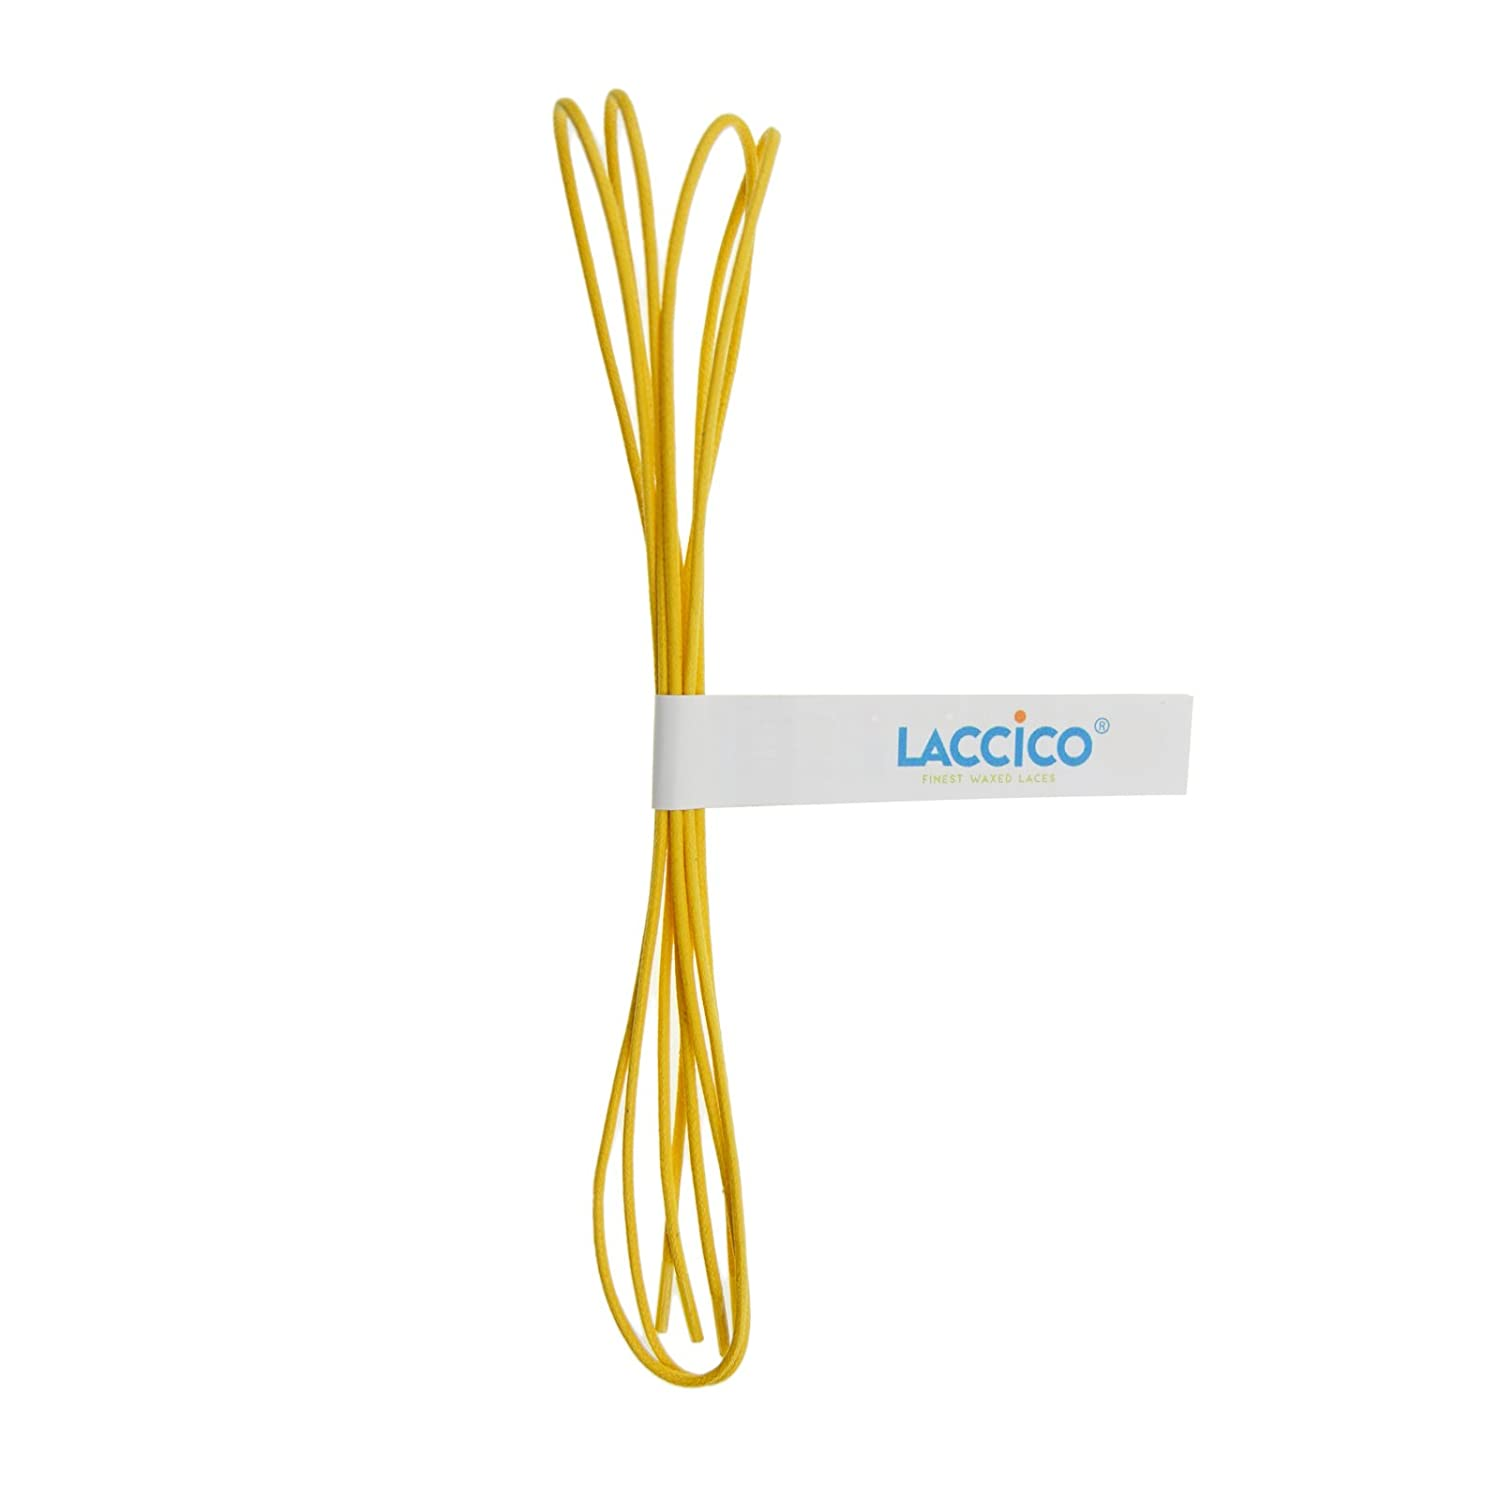 28a03e67a4aa6 LACCICO - Men's Round Waxed Shoelaces Diameter Ø 1/8' (2.0 mm) - YELLOW